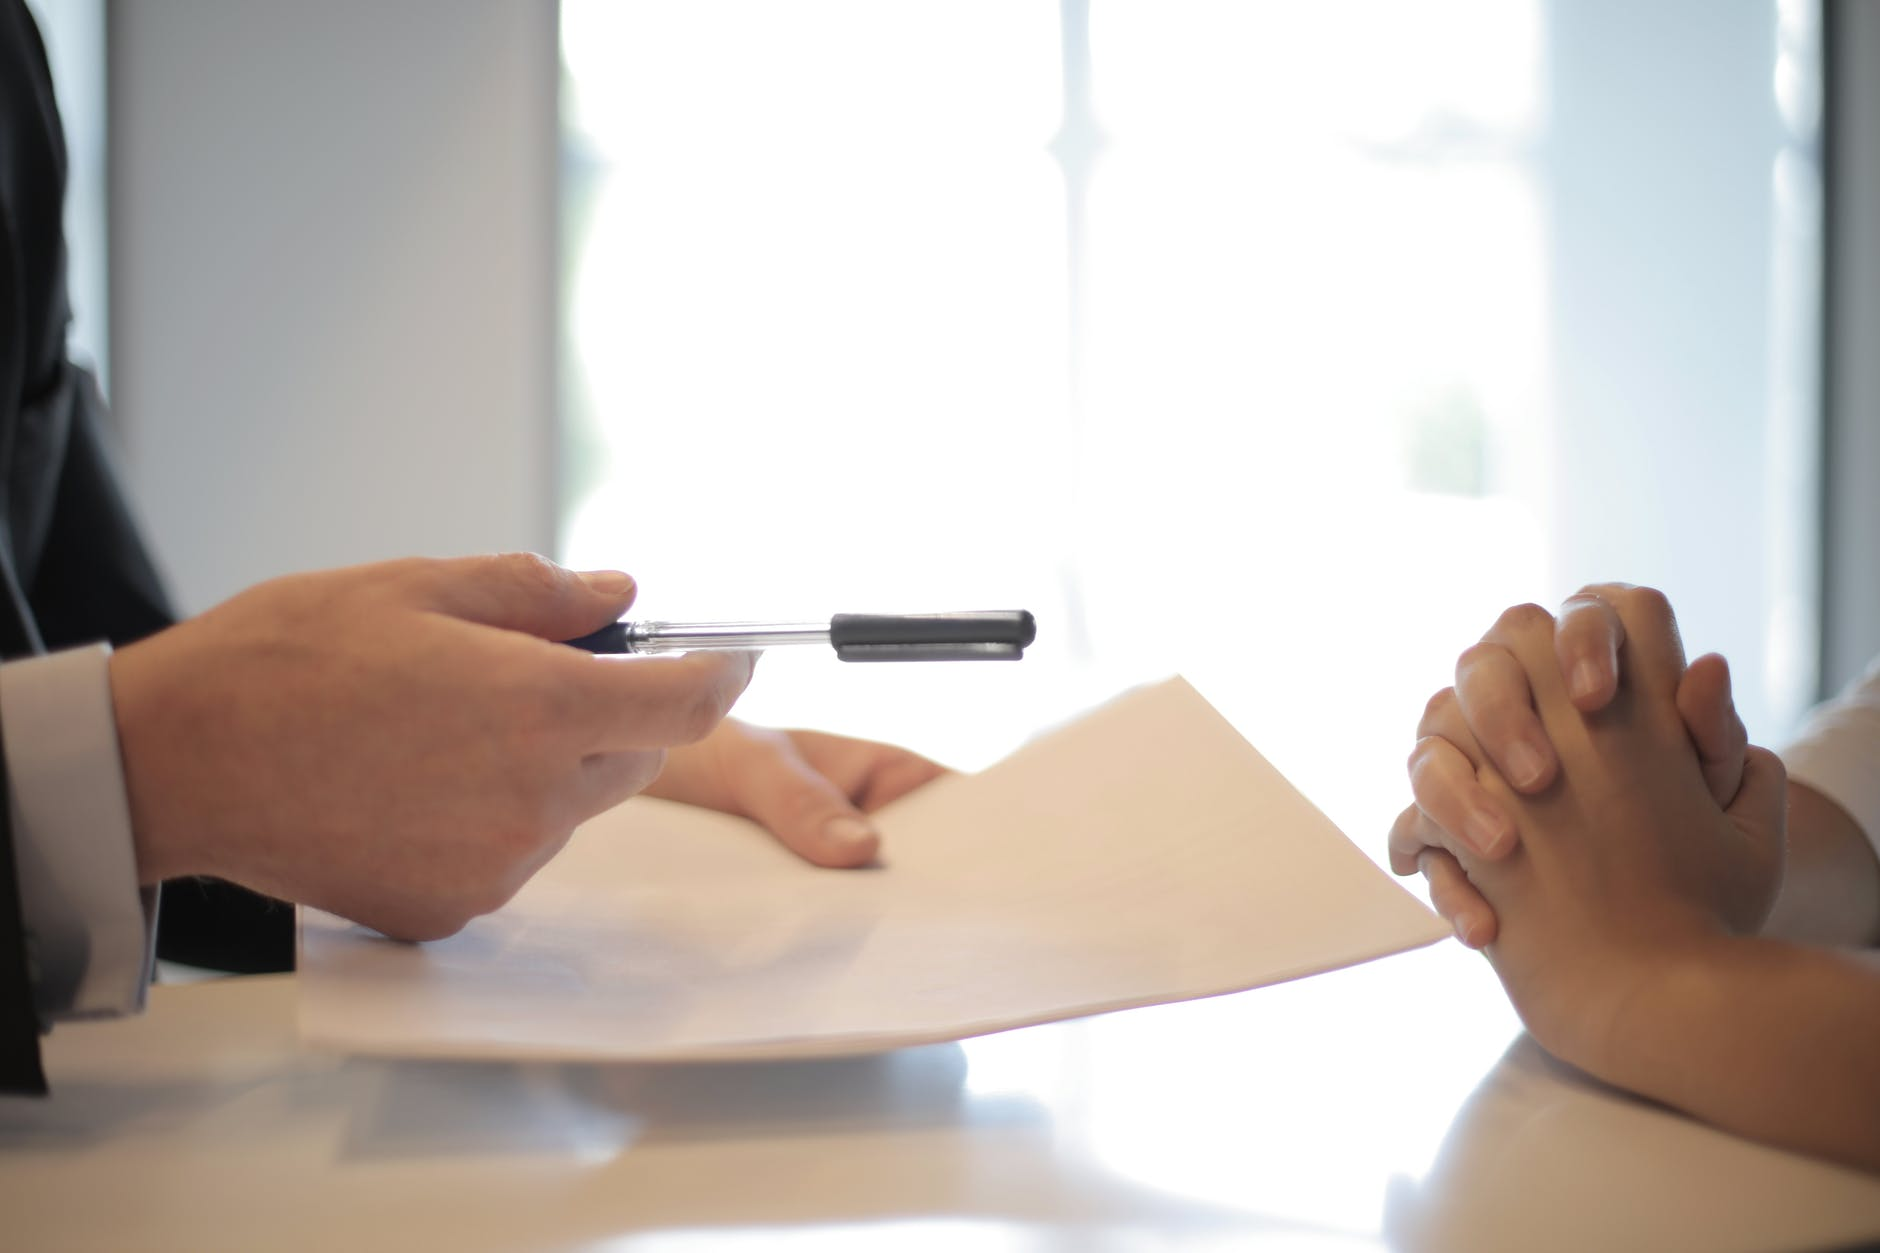 Interview scene, just the applicant and interviewer's hands. The interviewer holds a piece of paper and pen.